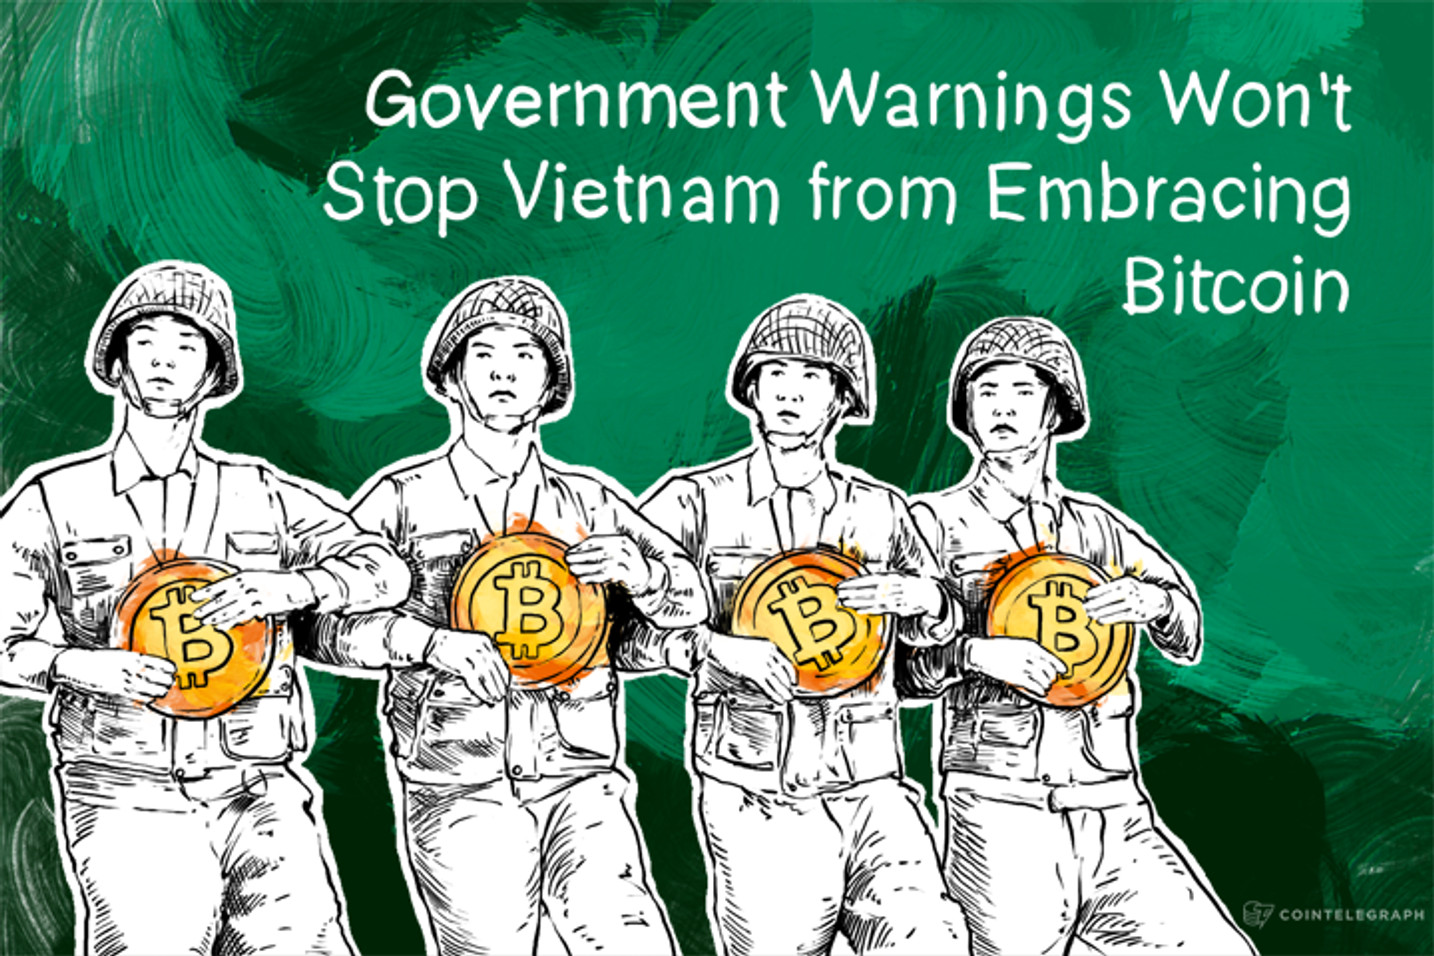 Government's warnings won't stop Vietnam from embracing Bitcoin